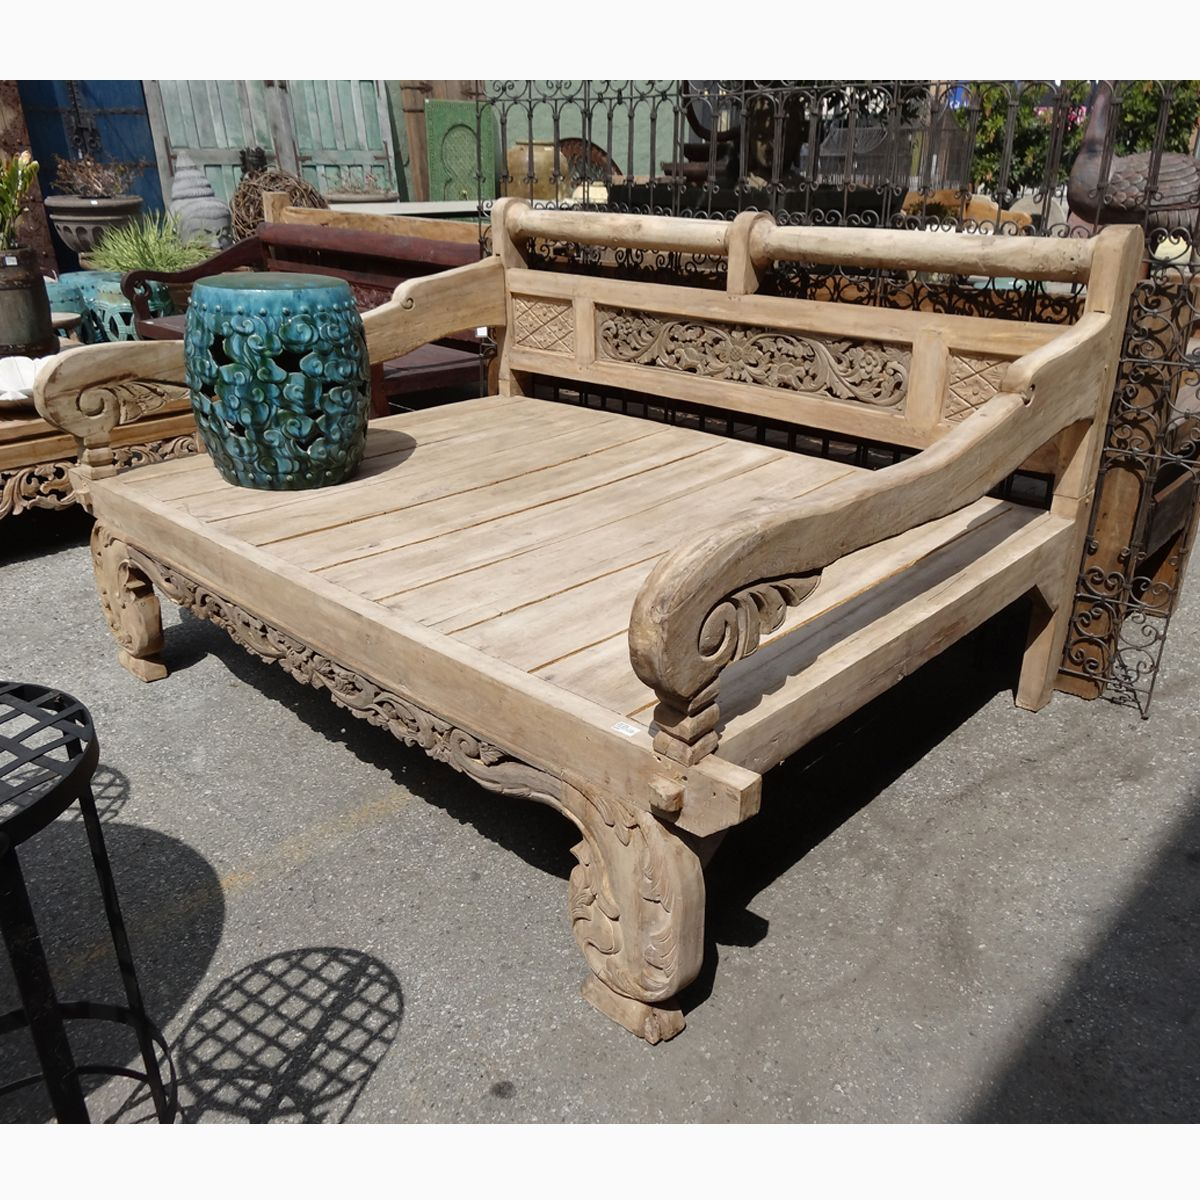 Teak carved daybed full size mix furniture